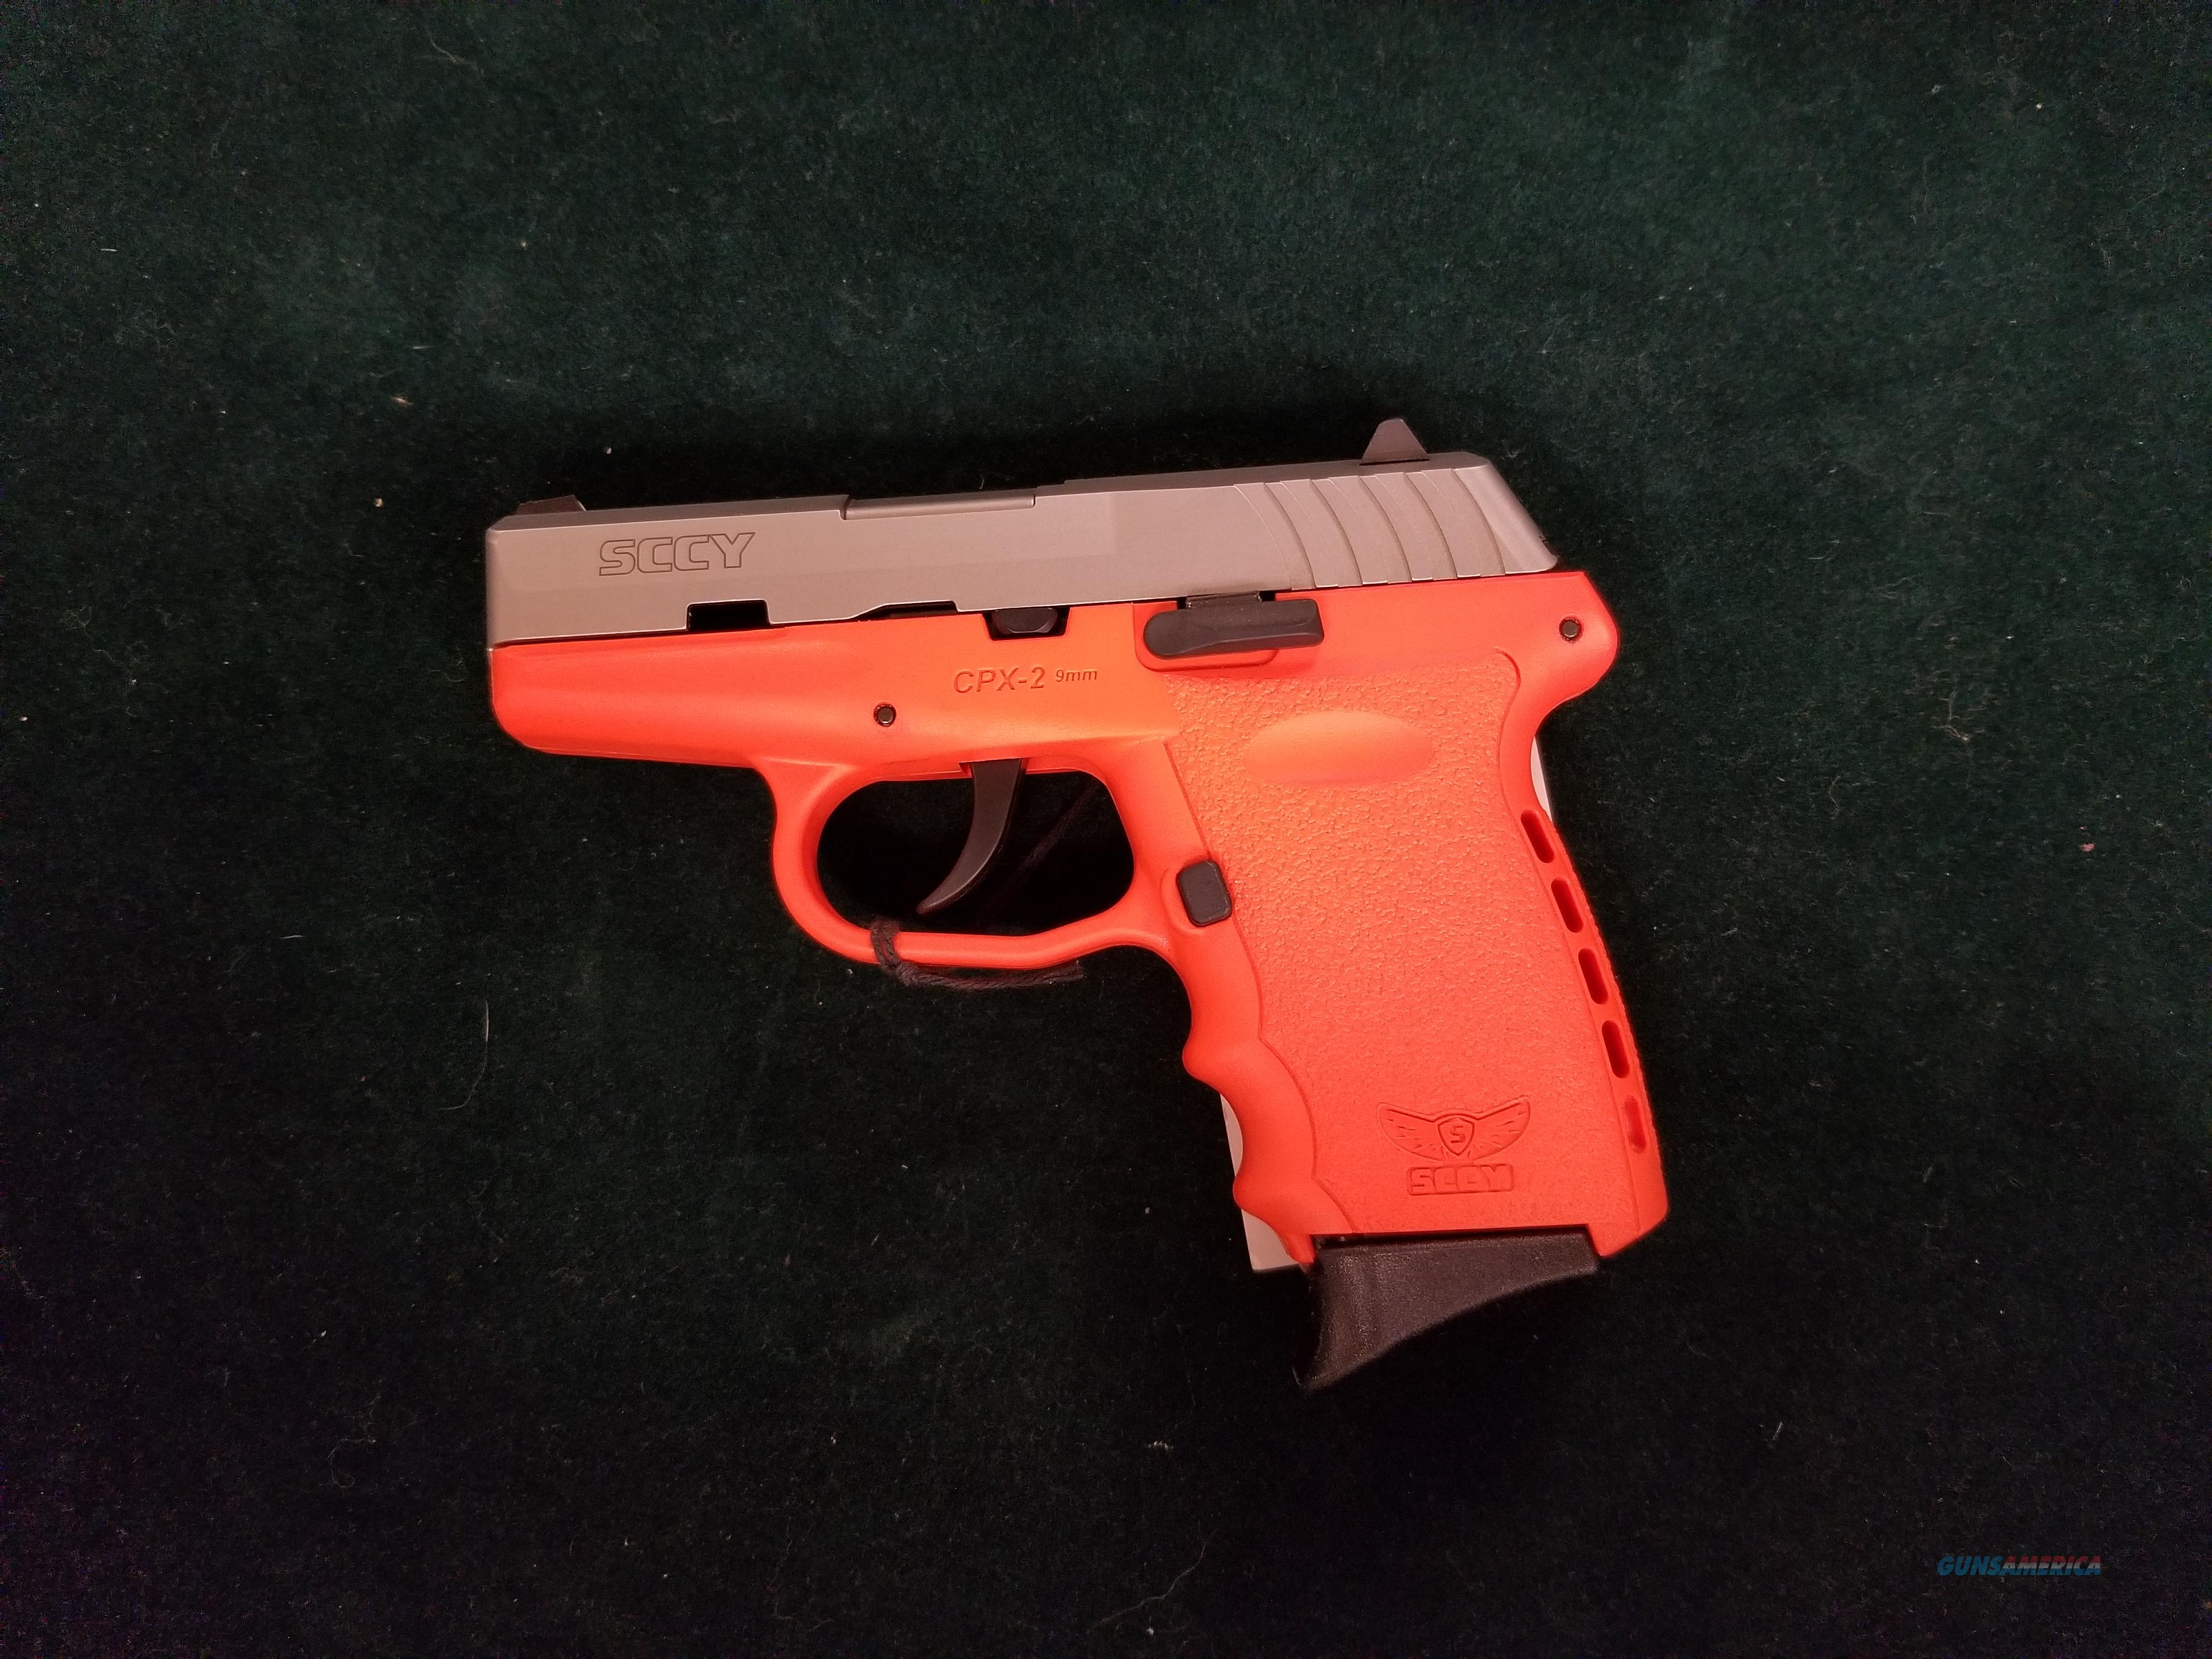 SCCY CPX-2 in bright orange. Road worker's special.  Guns > Pistols > SCCY Pistols > CPX2